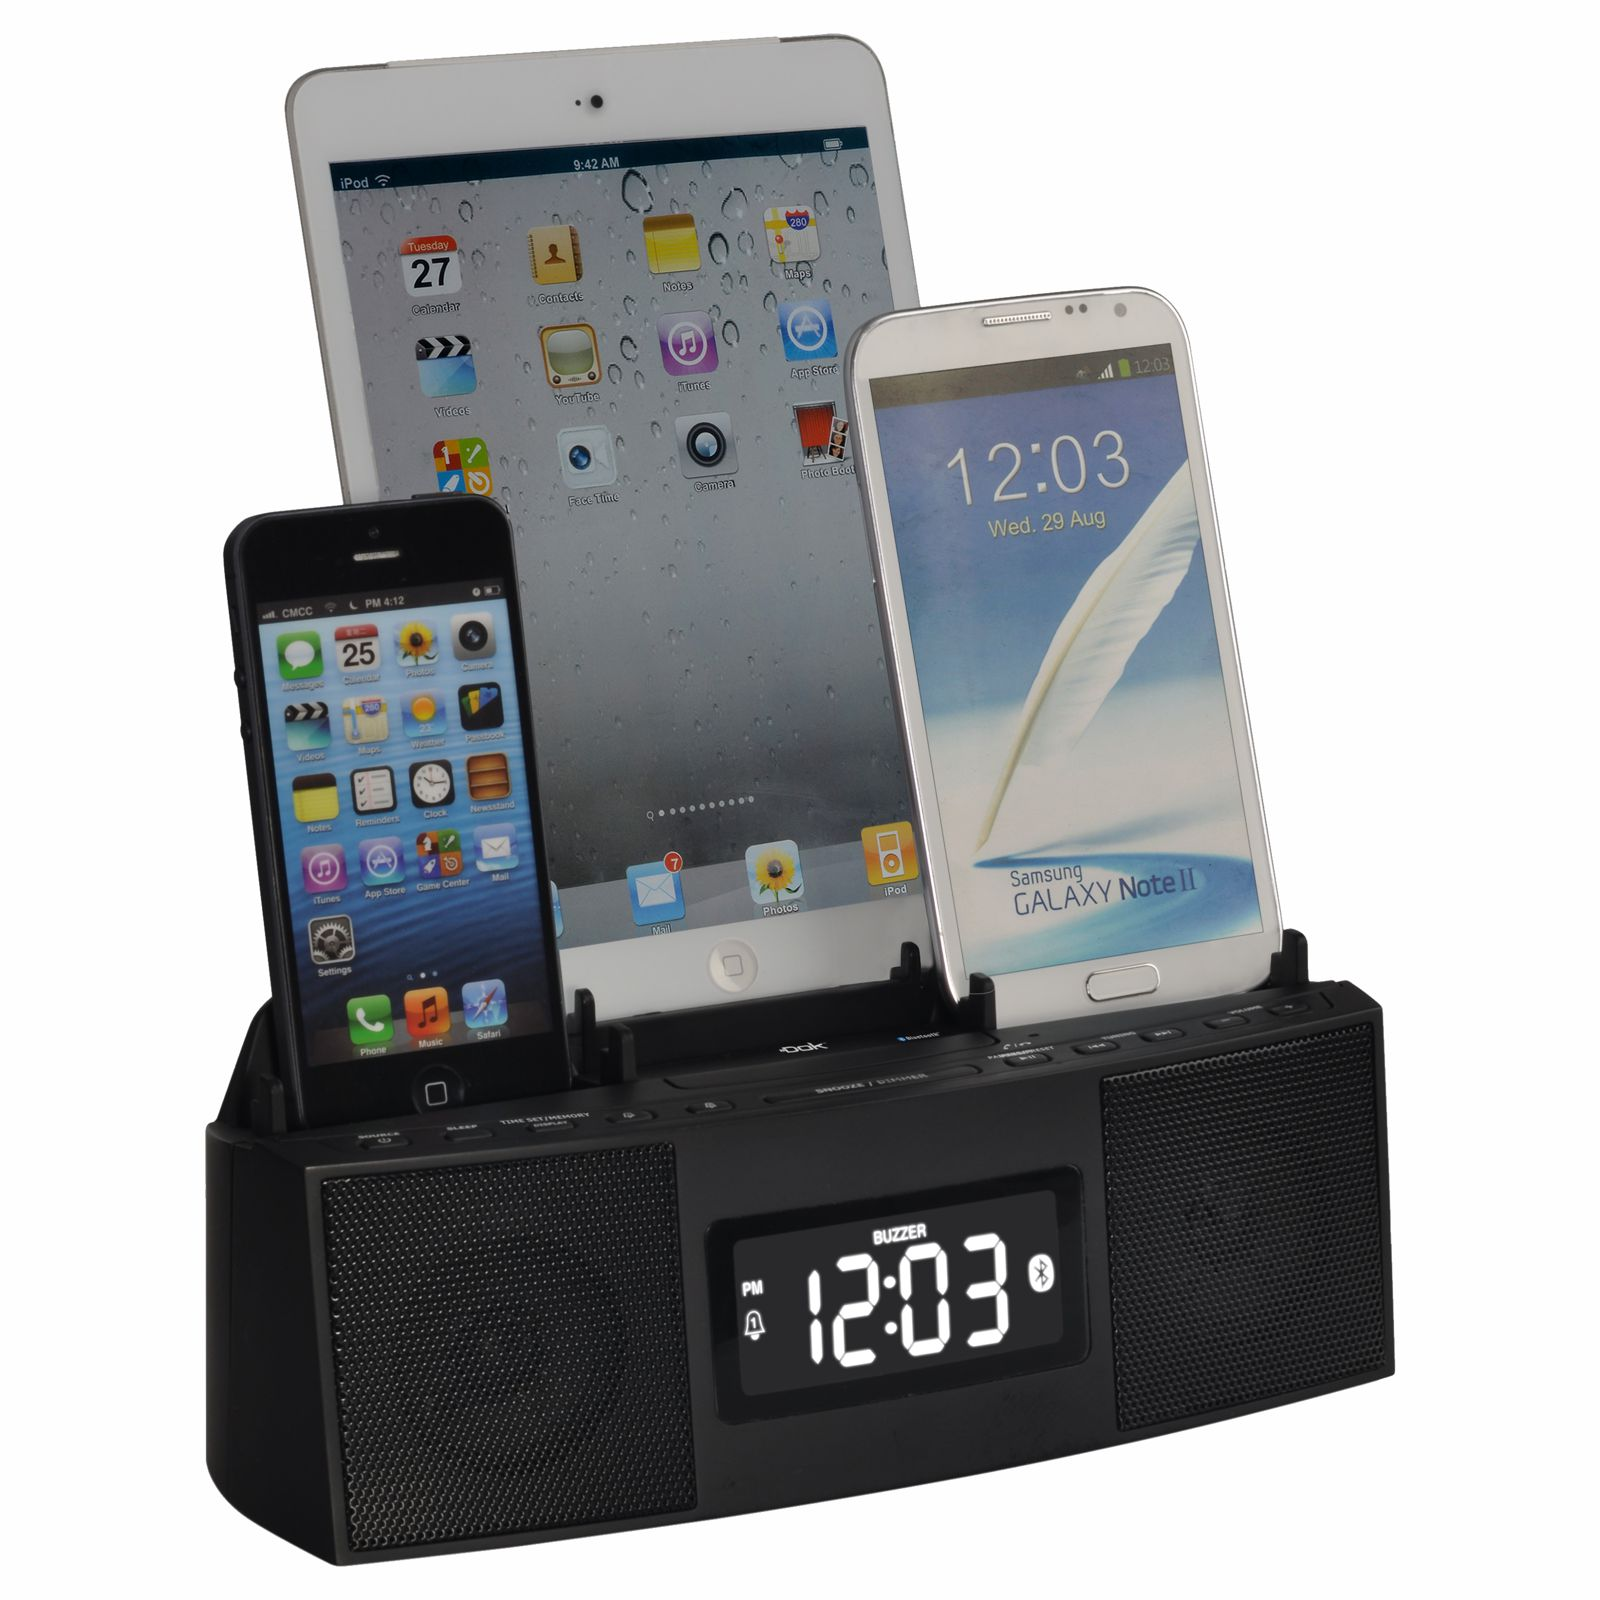 CR28 - 3 Port Smart Phone Charger with Speaker Phone (Bluetooth), Alarm, Clock, FM Radio